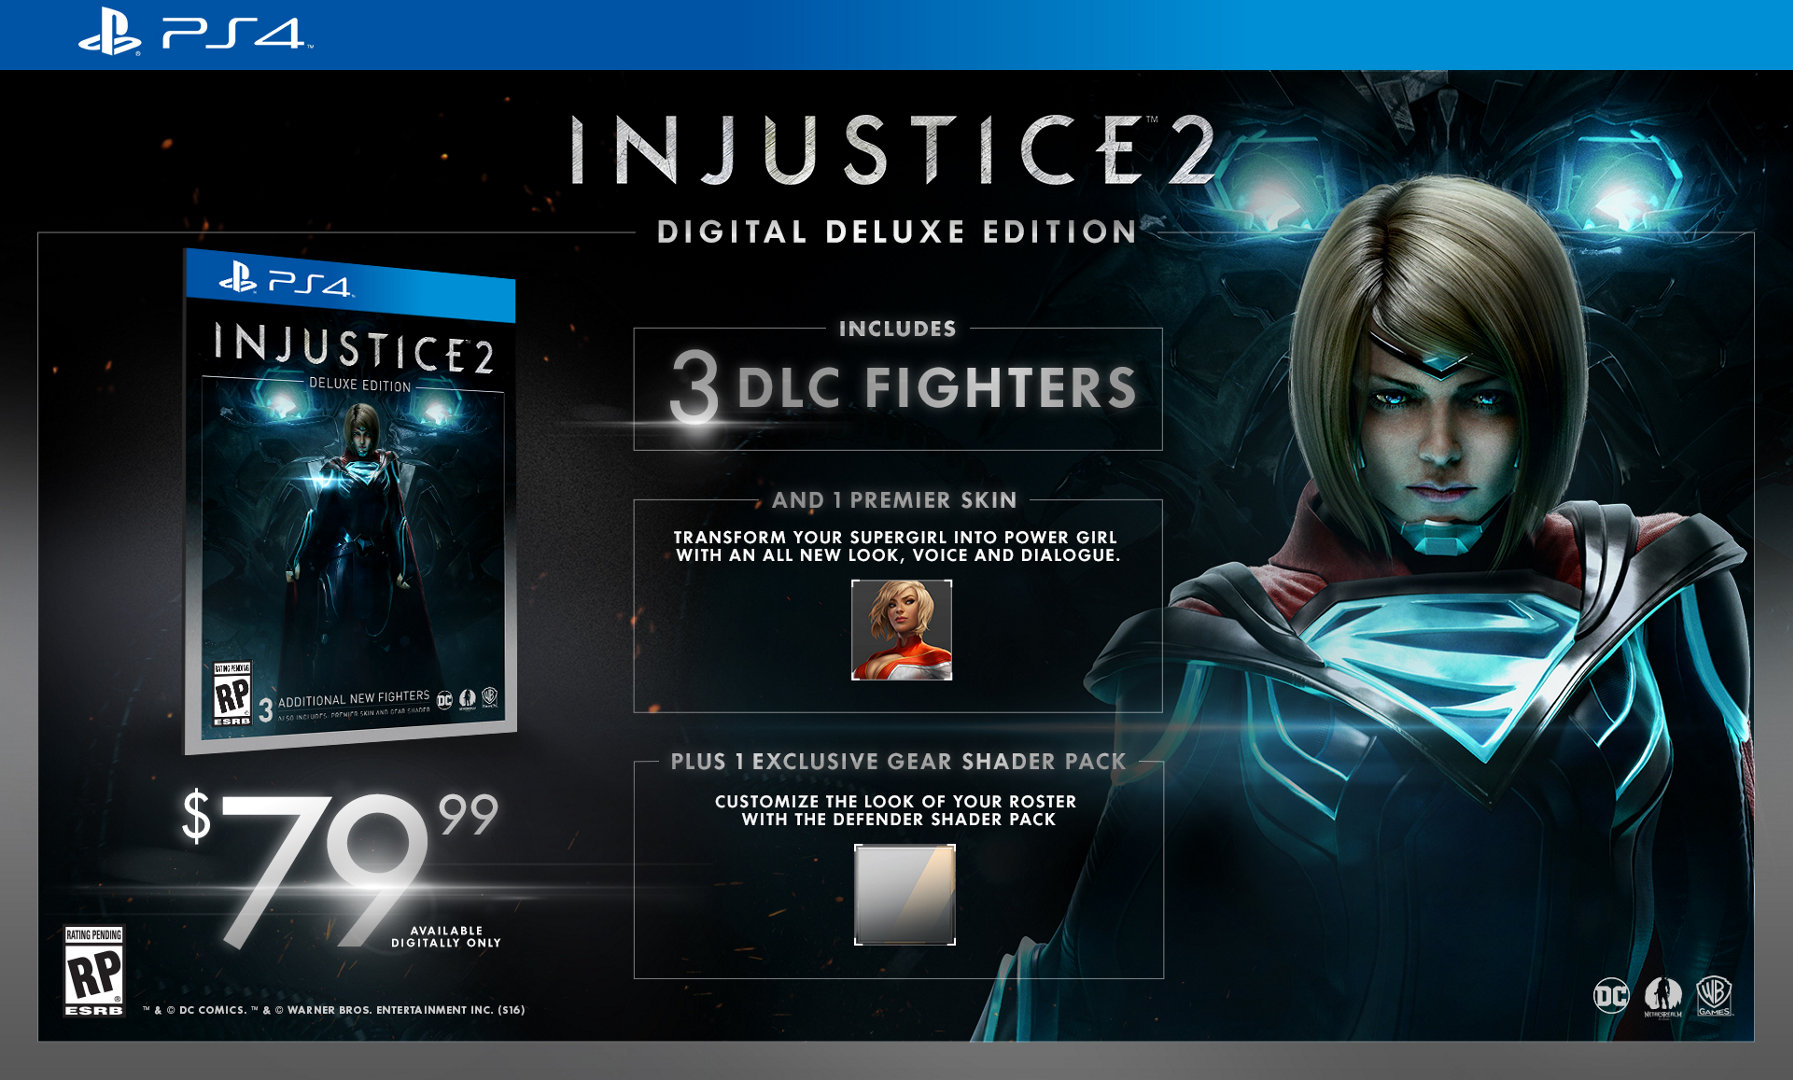 Edición Digital Deluxe de Injustice 2